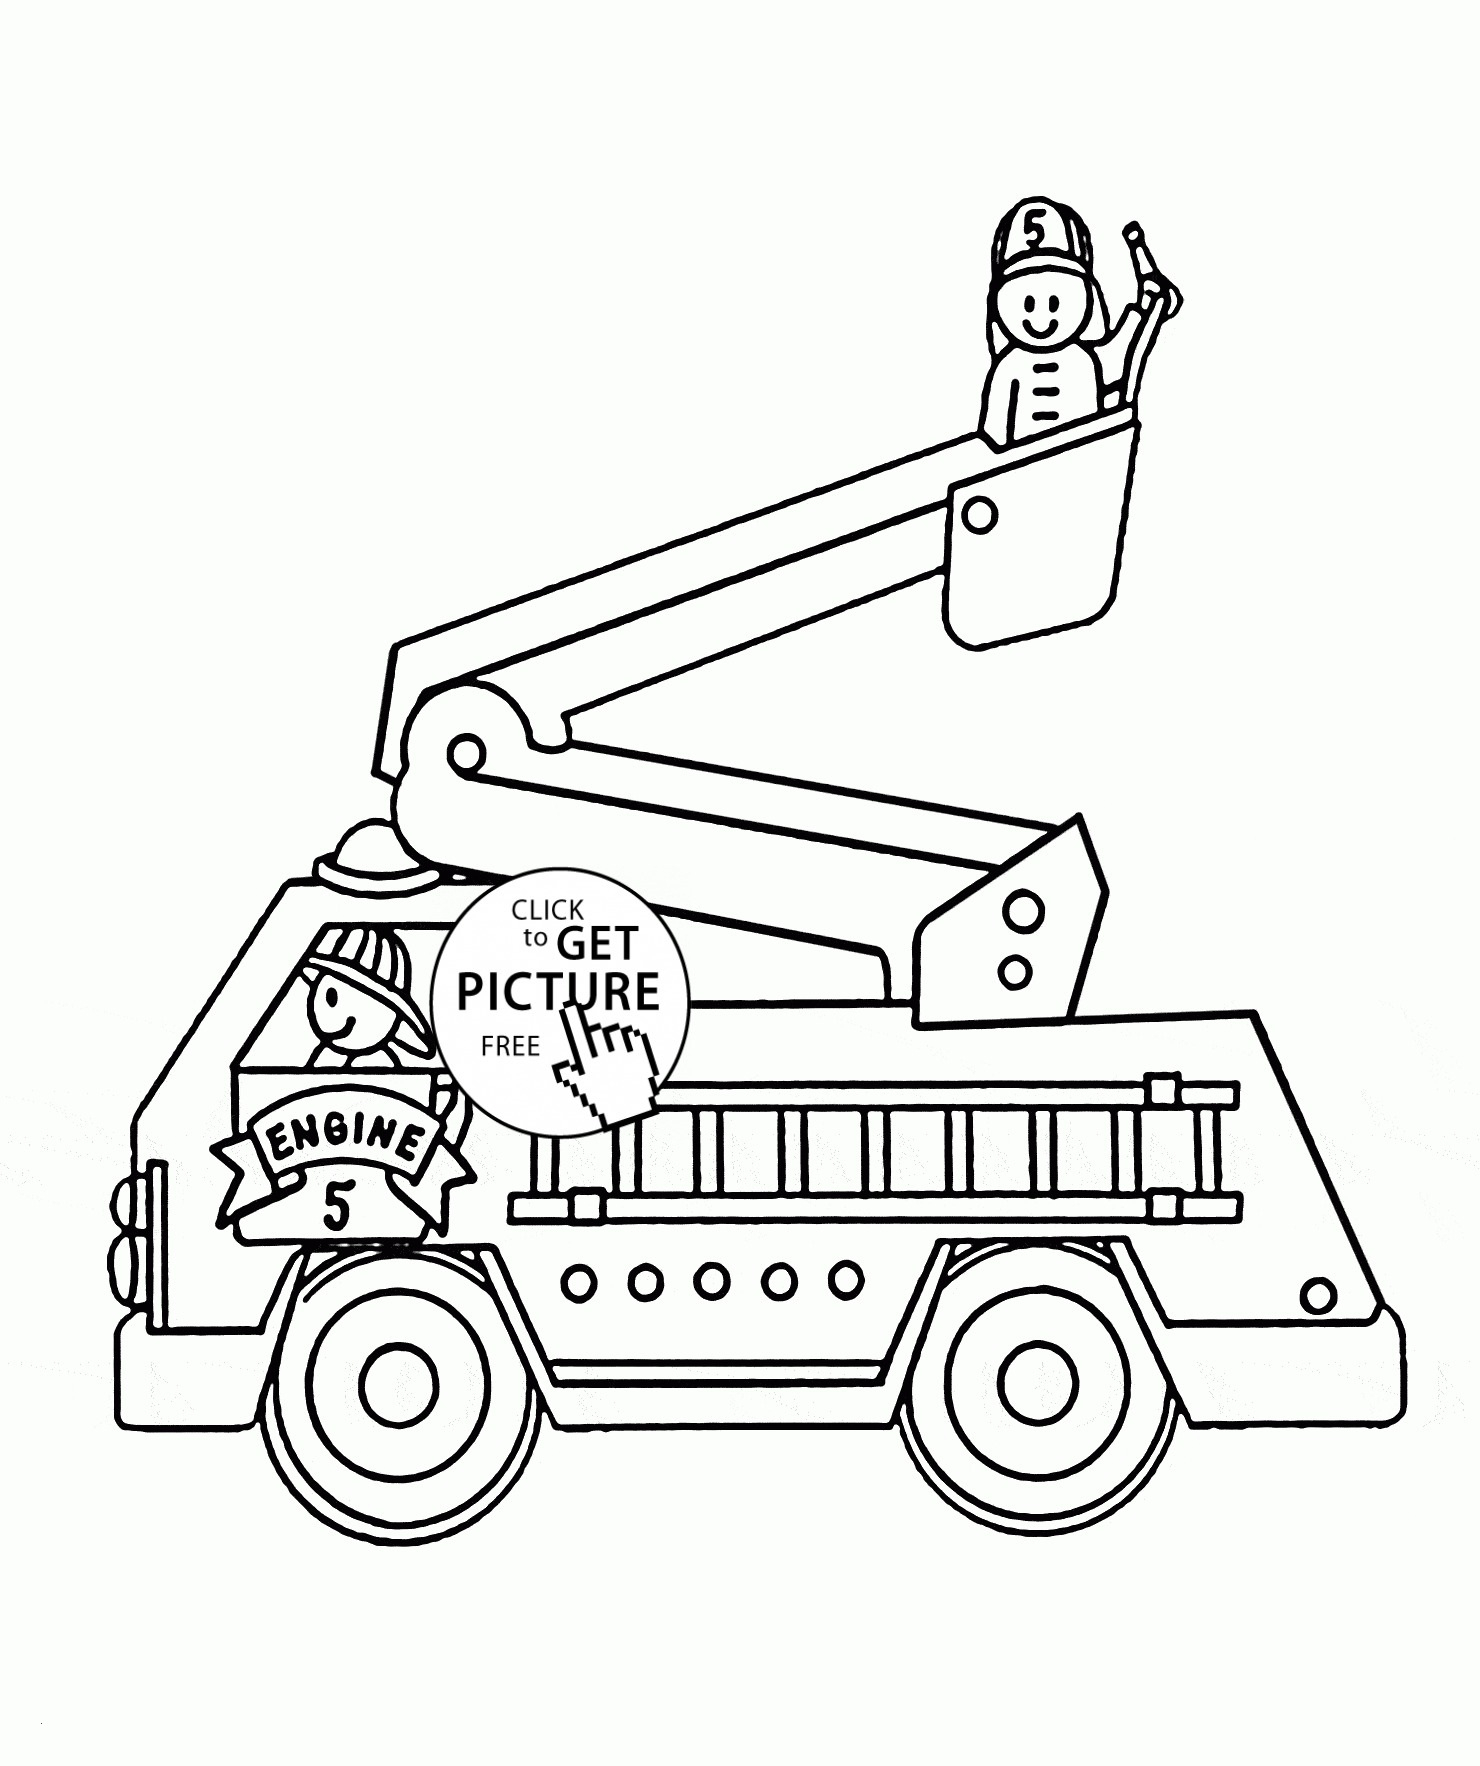 Free Fire Truck Coloring Pages Printable  Gallery 15r - Free For kids